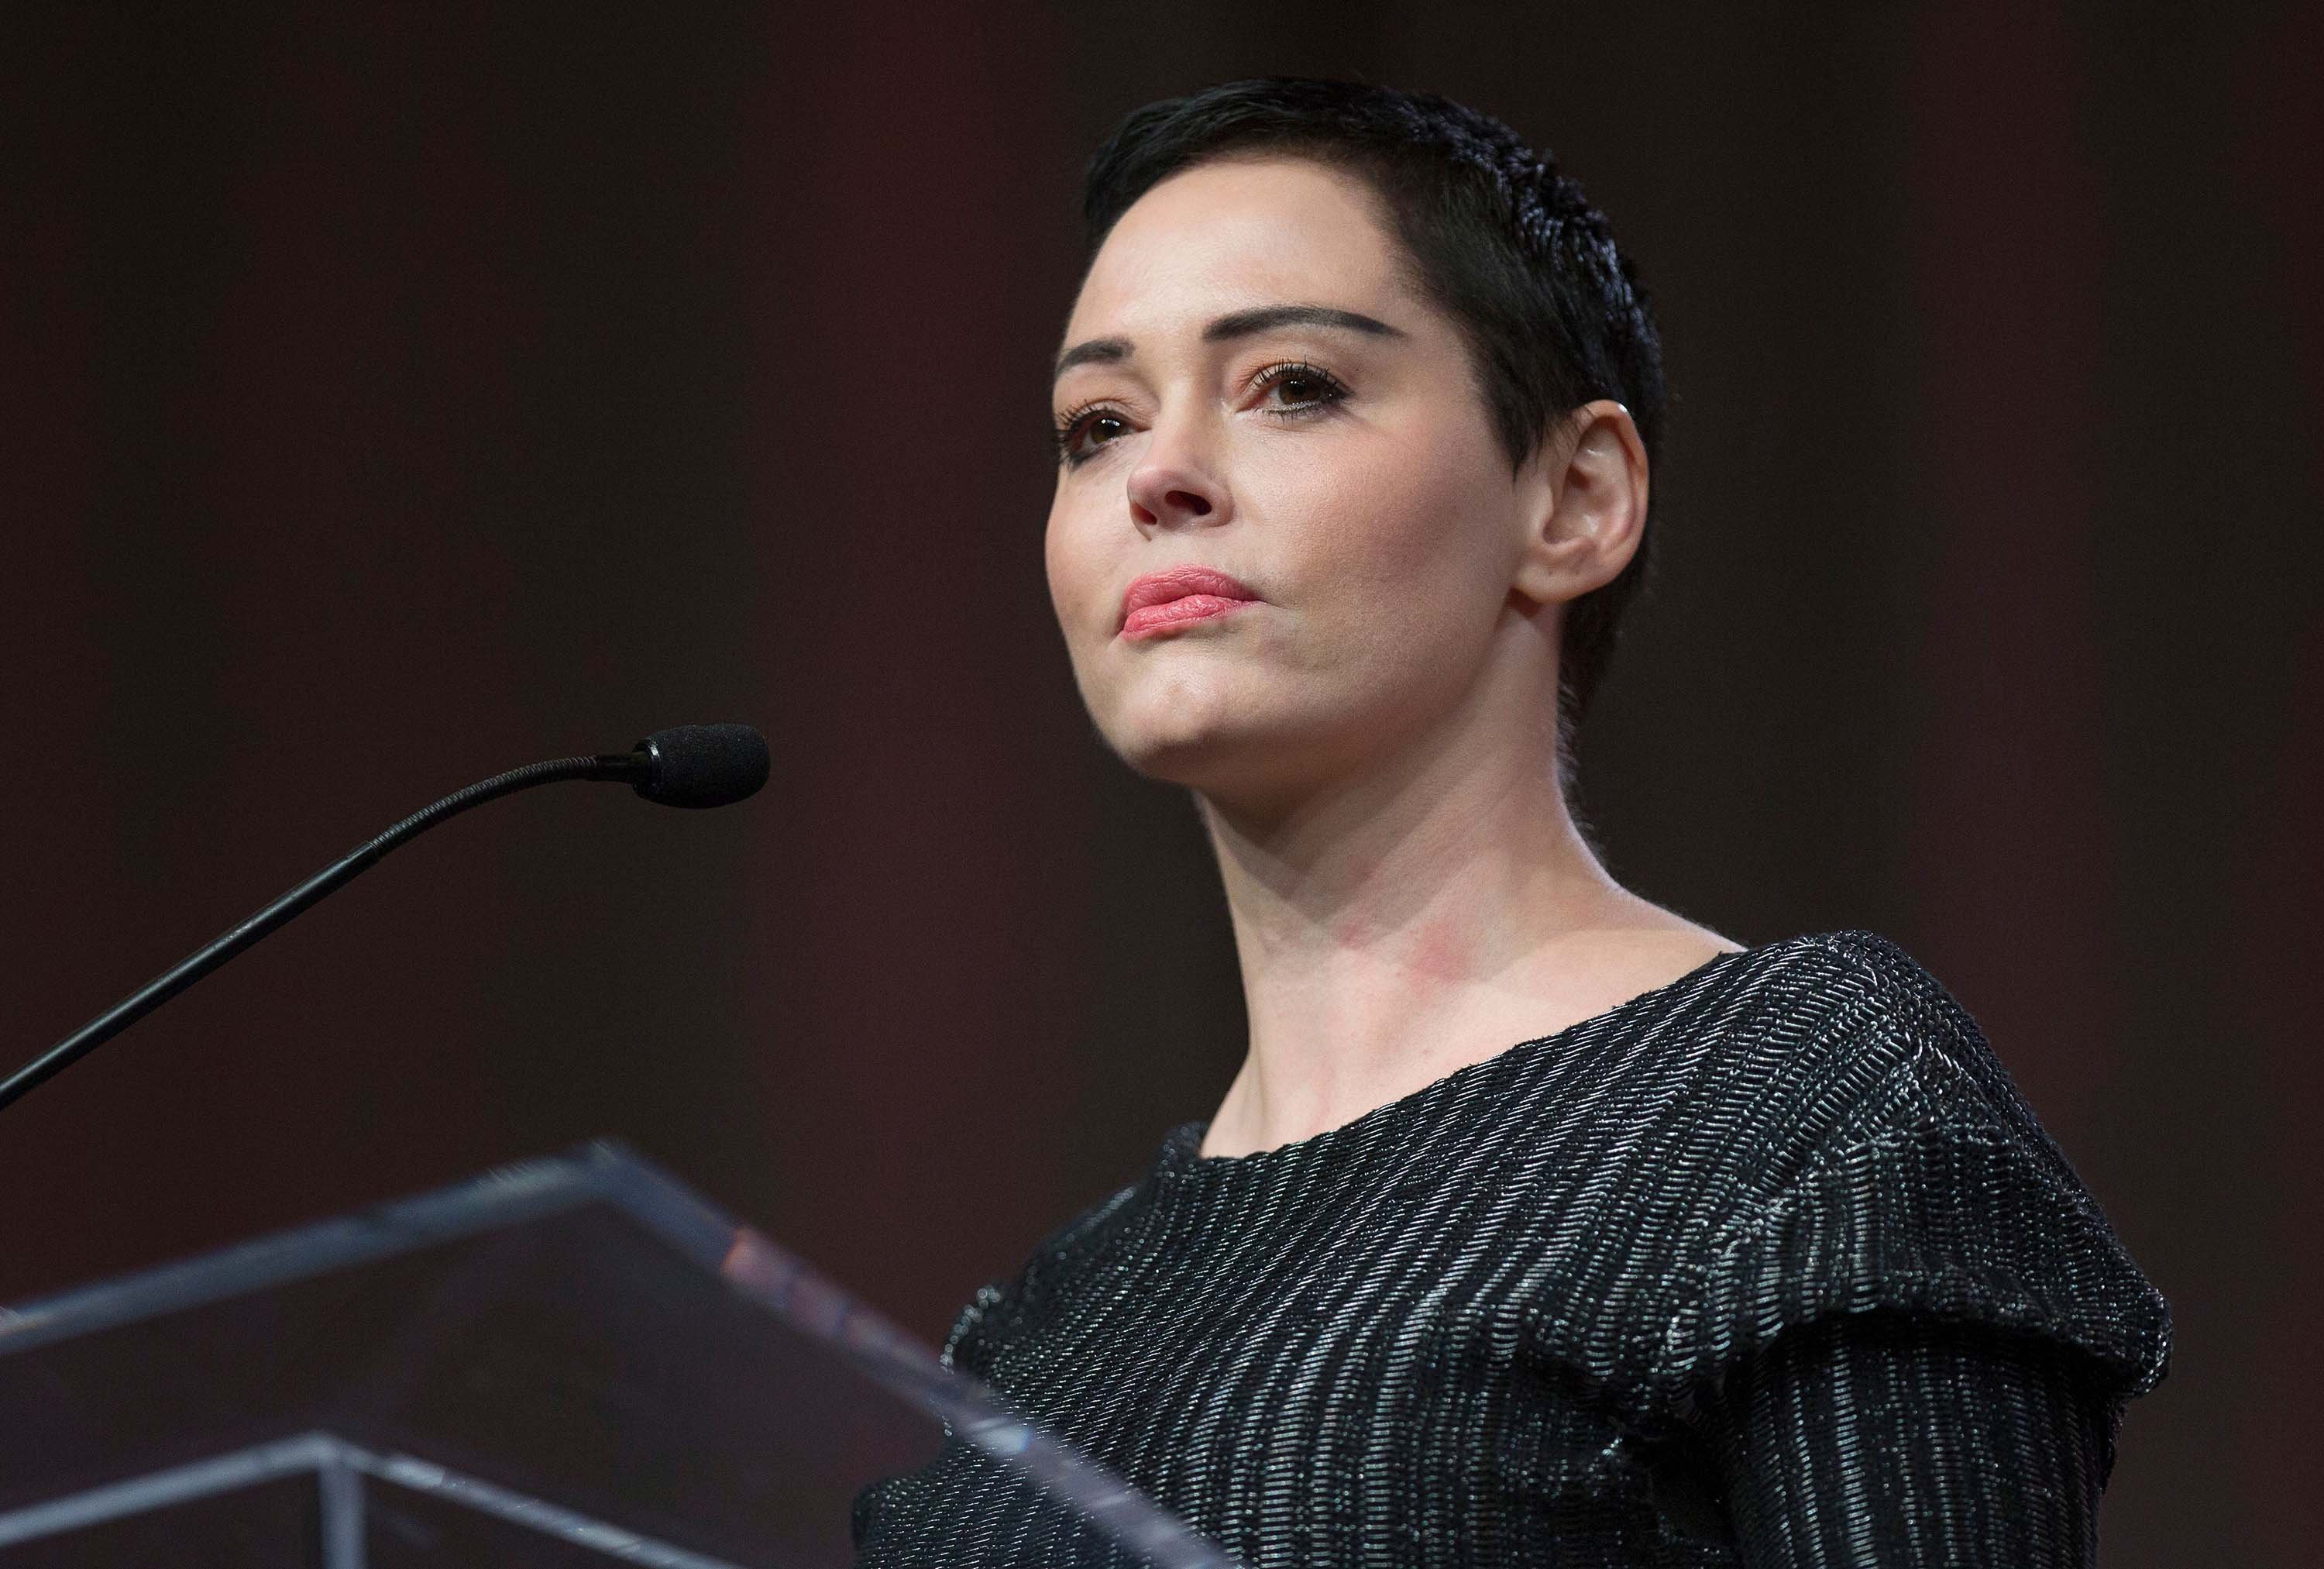 A grand jury in Virginia indicted actress and activist Rose McGowan Monday on one felony count of cocaine possession, according to online court records in Loudoun County, Virginia.